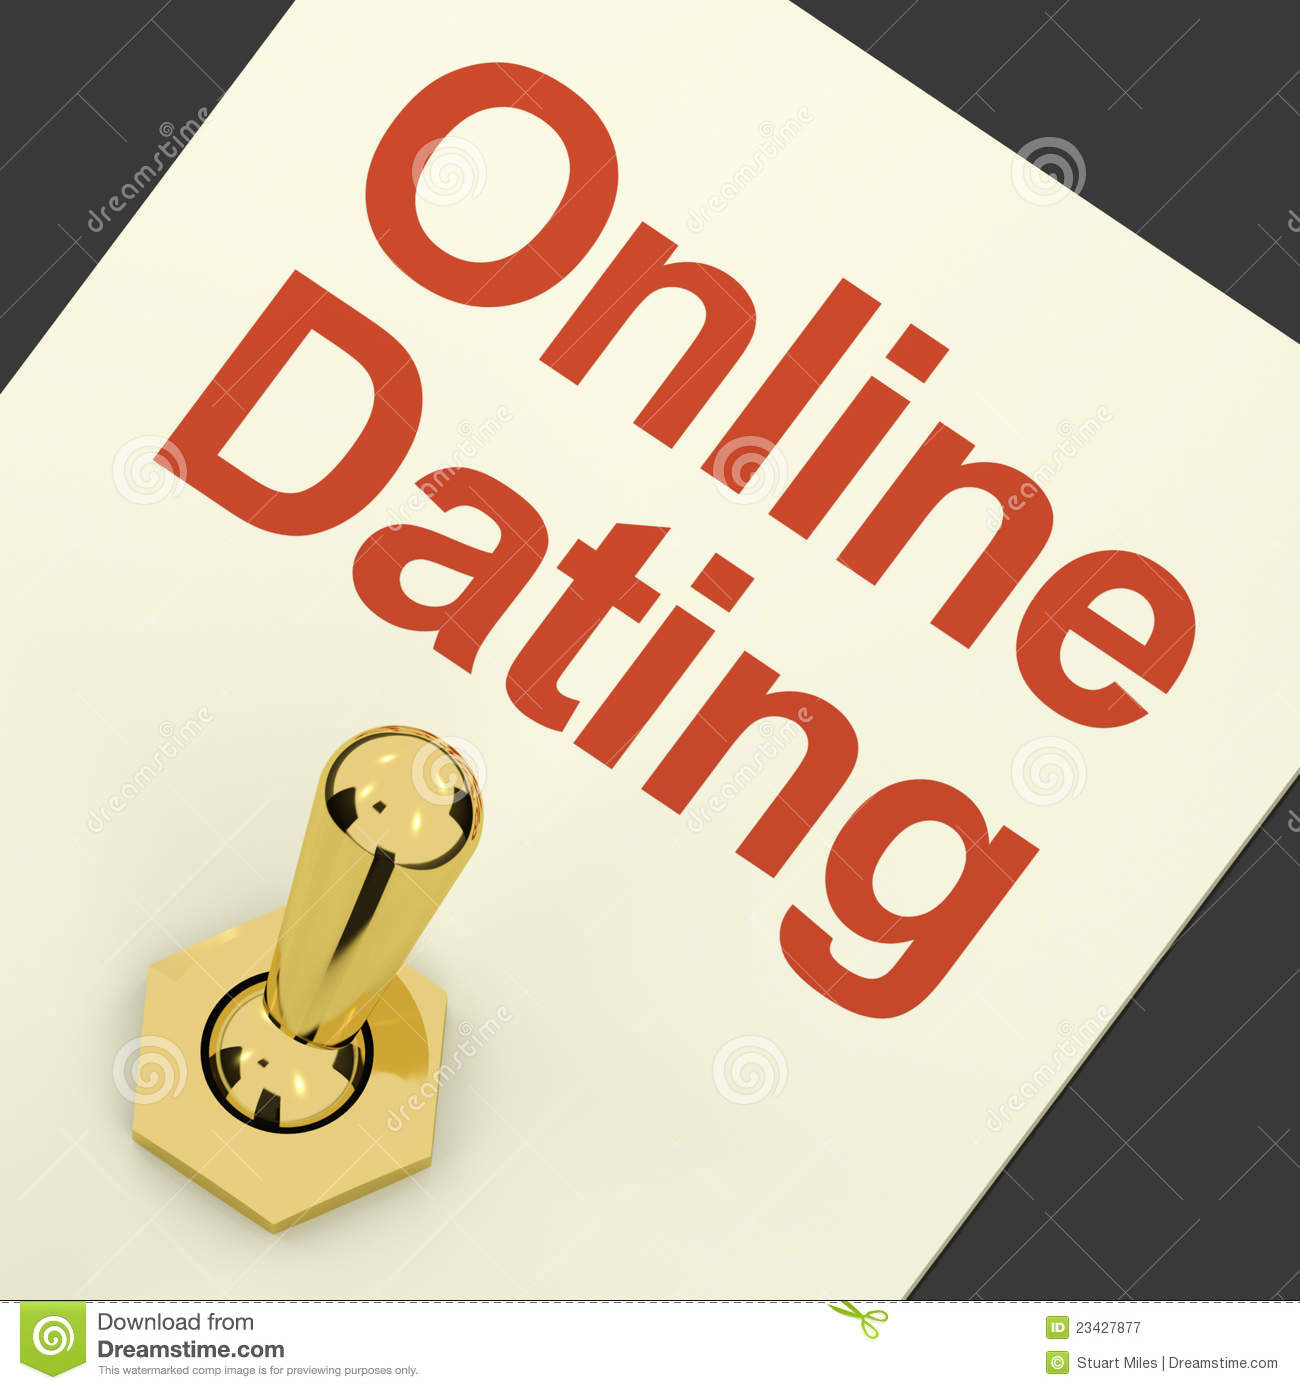 part time love online dating How to find love without internet dating she is one of thousands of britons who have no intention of being part of the online dating who works part-time as.